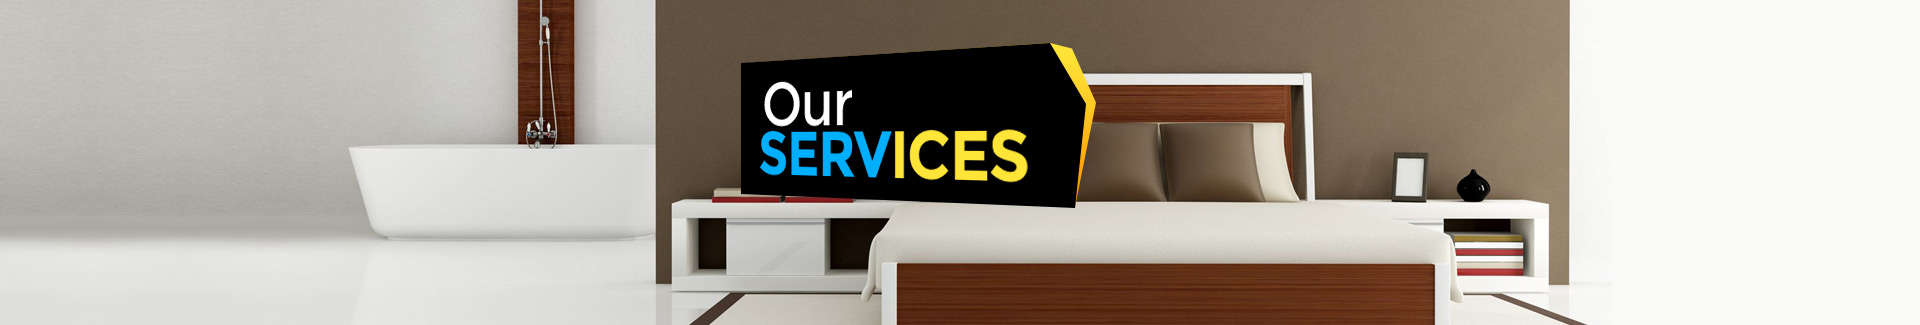 services-header-background